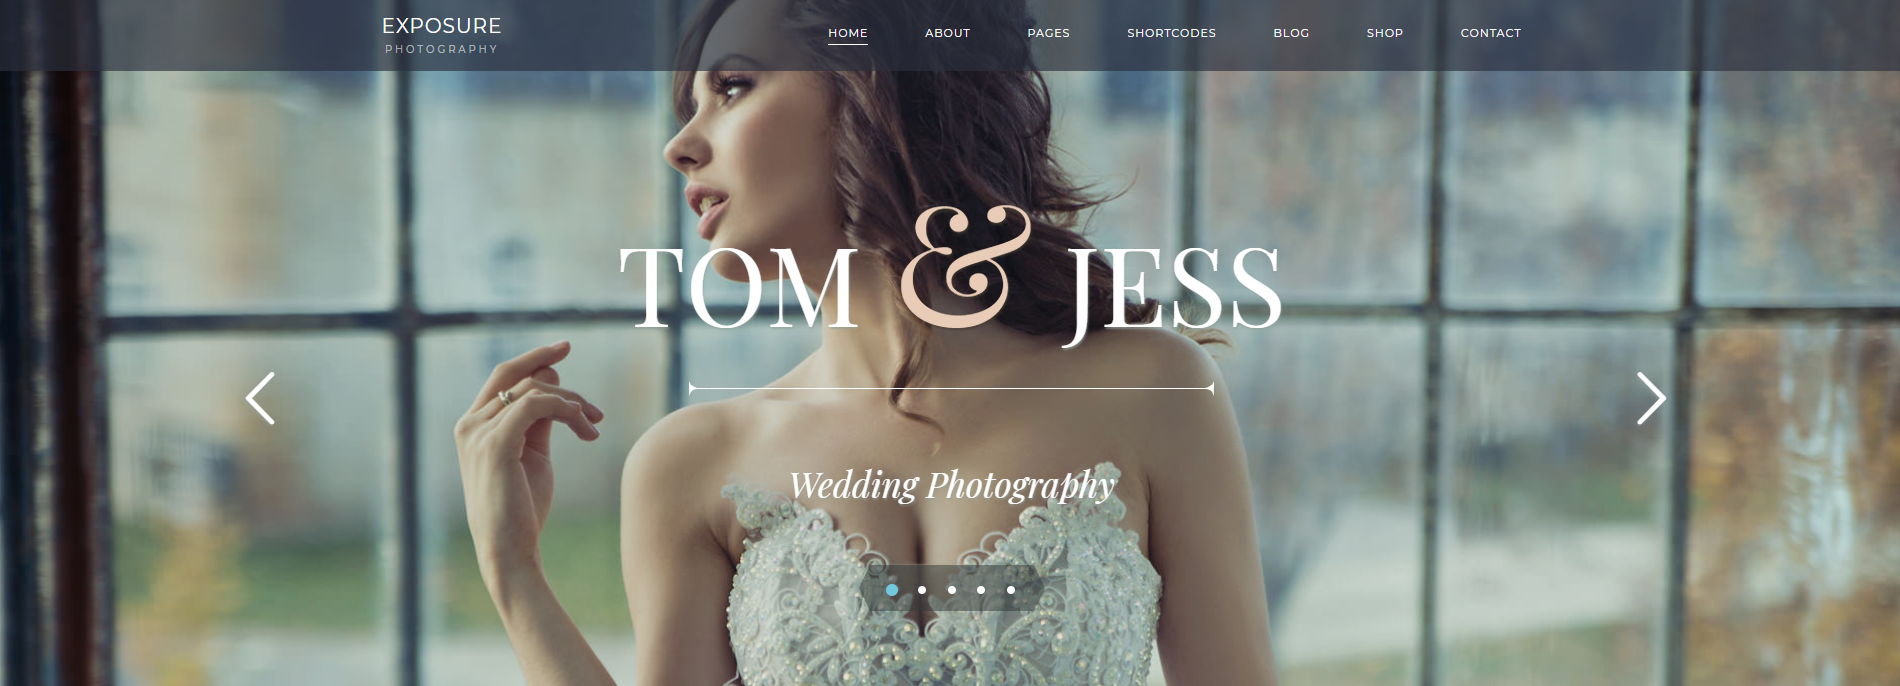 Lady Wearing Wedding Dress   13 Best WordPress Themes For All Types Of Blogs & Websites